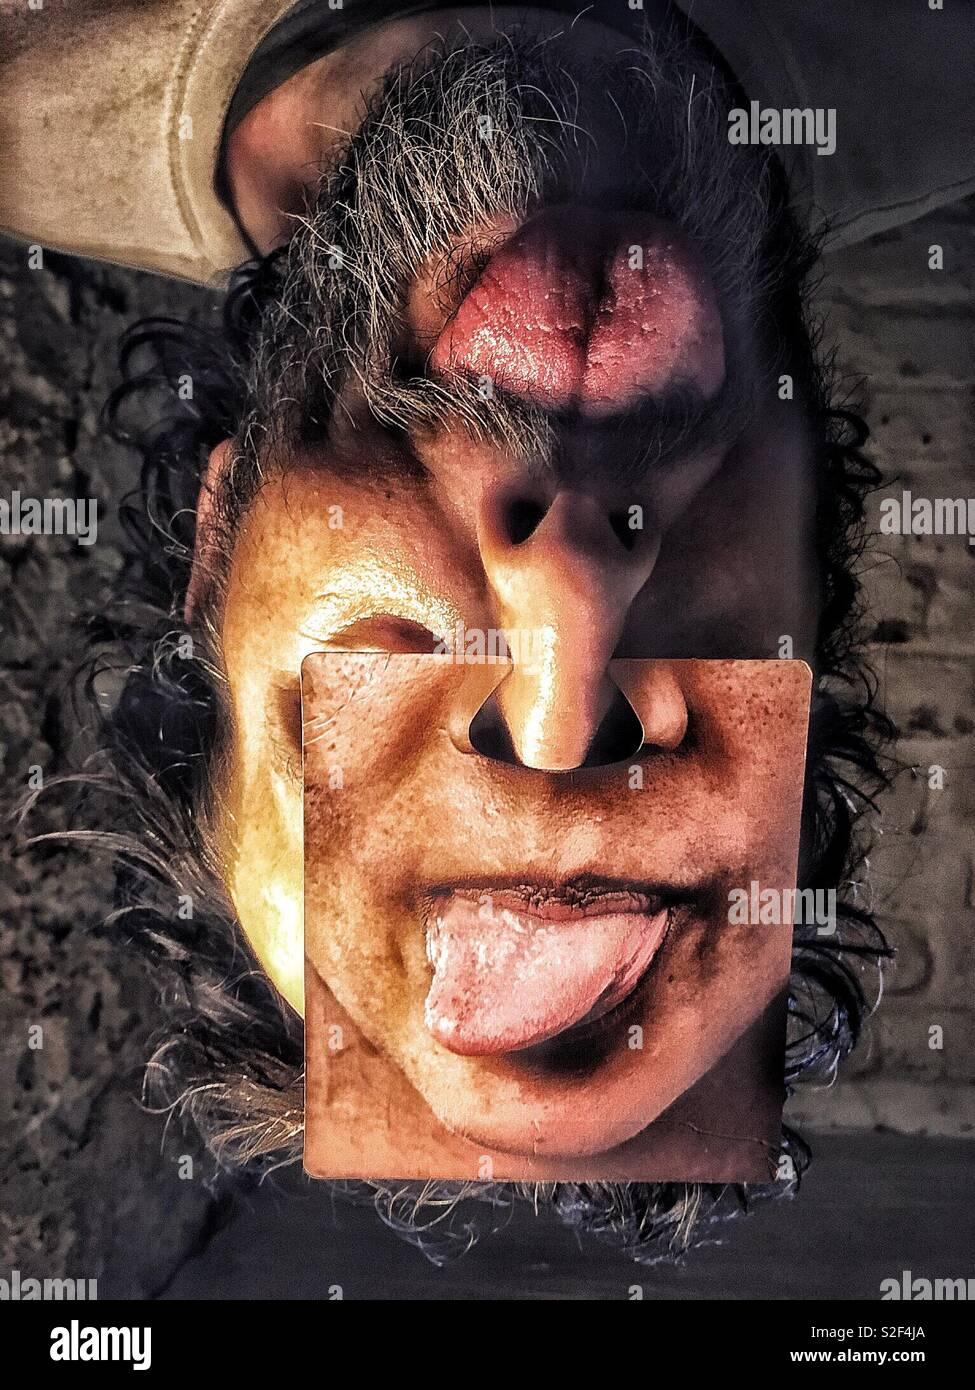 Surreal upside down man's face with two mouths pulling tongues - Stock Image